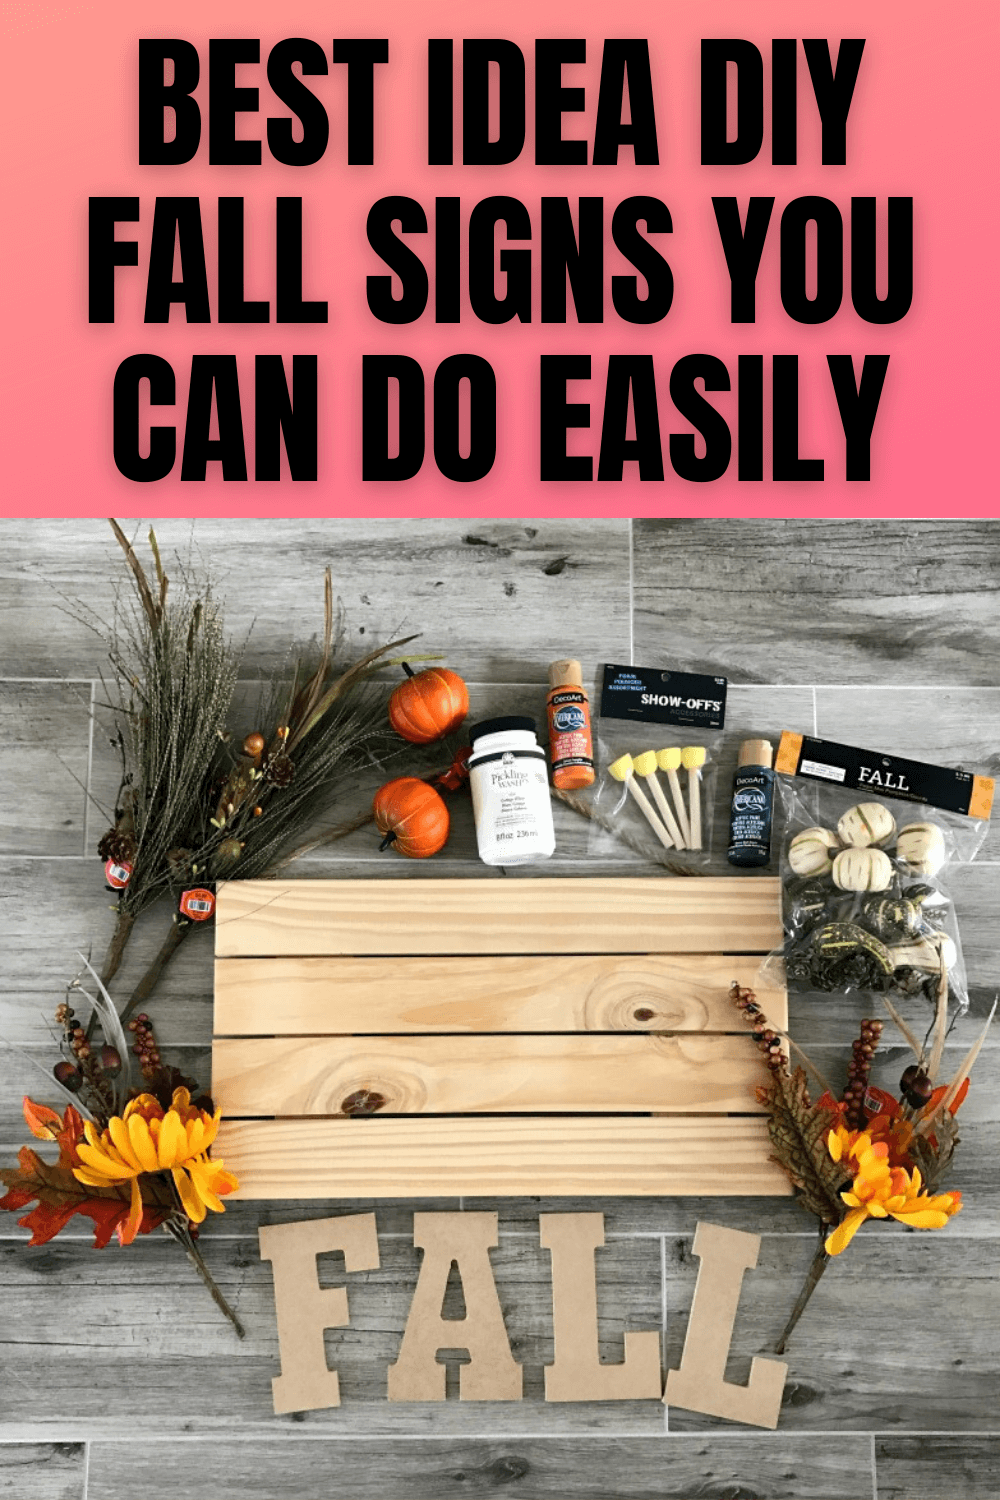 BEST IDEA DIY FALL SIGNS YOU CAN DO EASILY